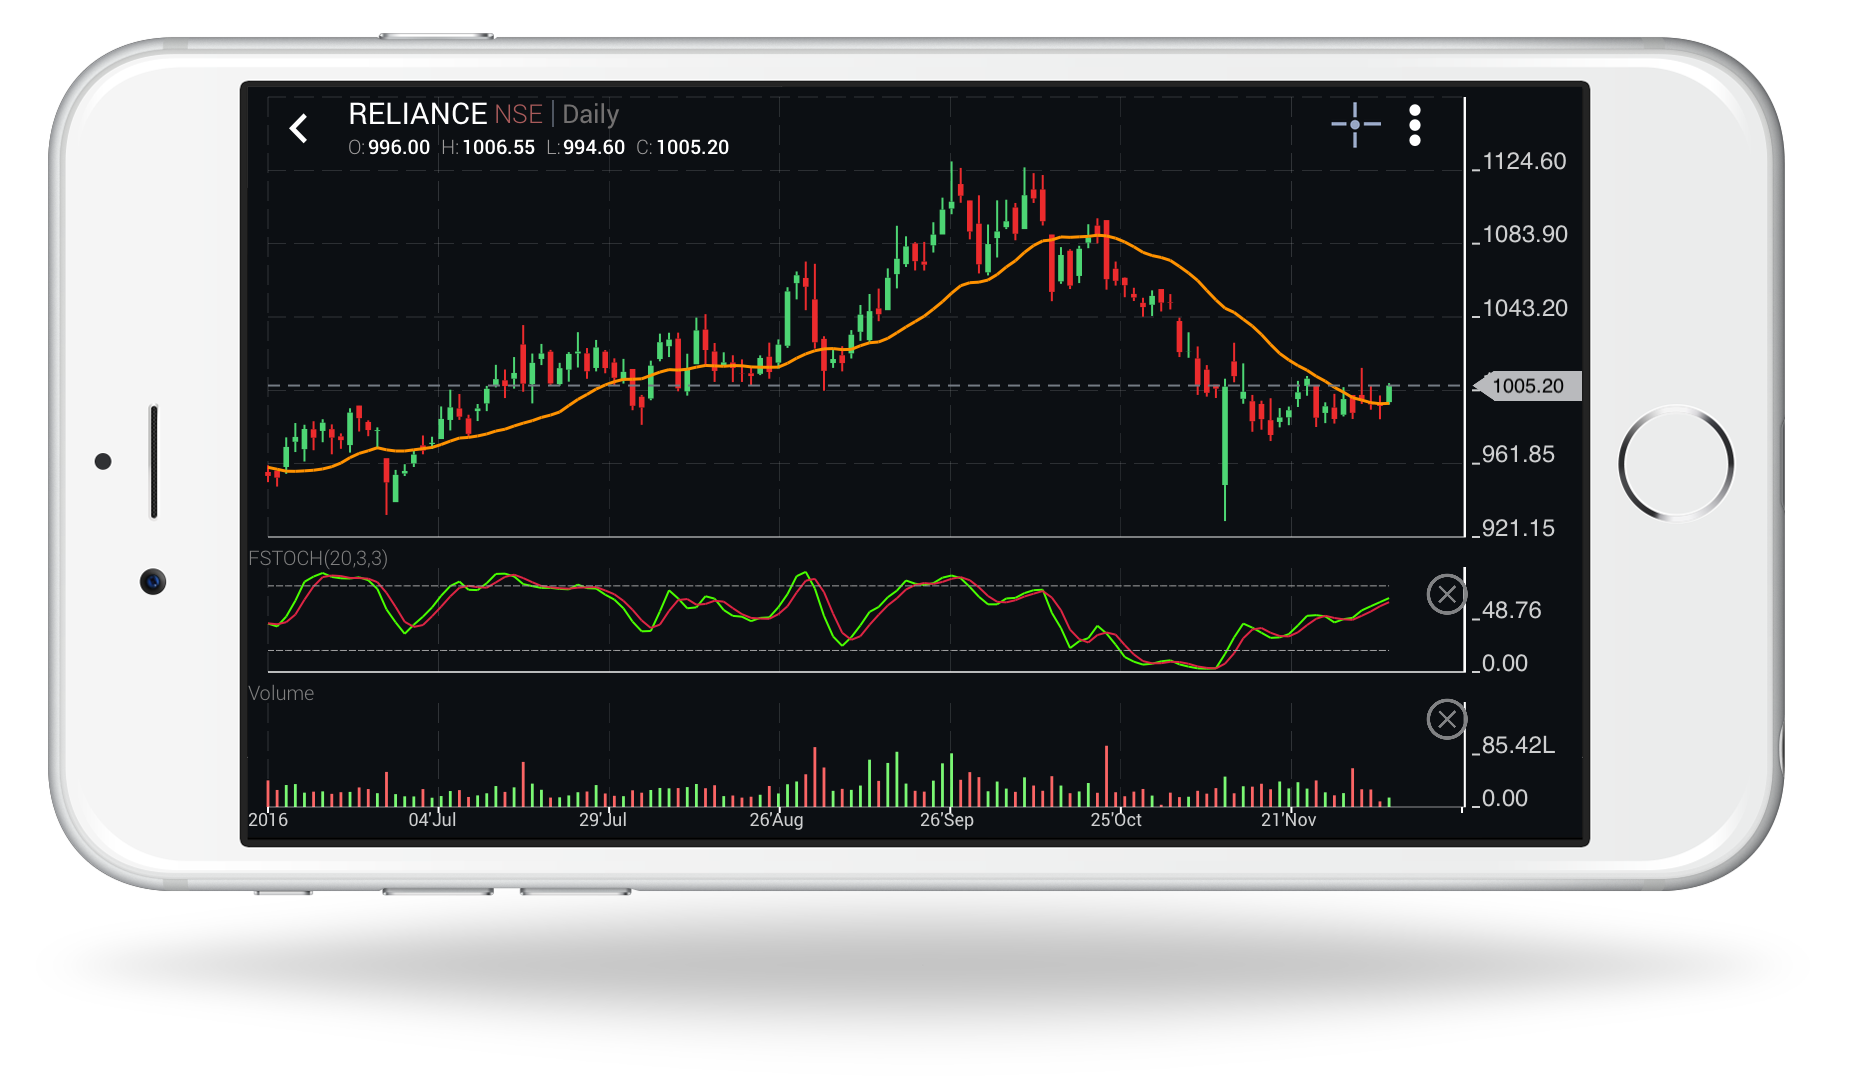 Mobile trading application new charting features edelweiss full screen charting geenschuldenfo Image collections